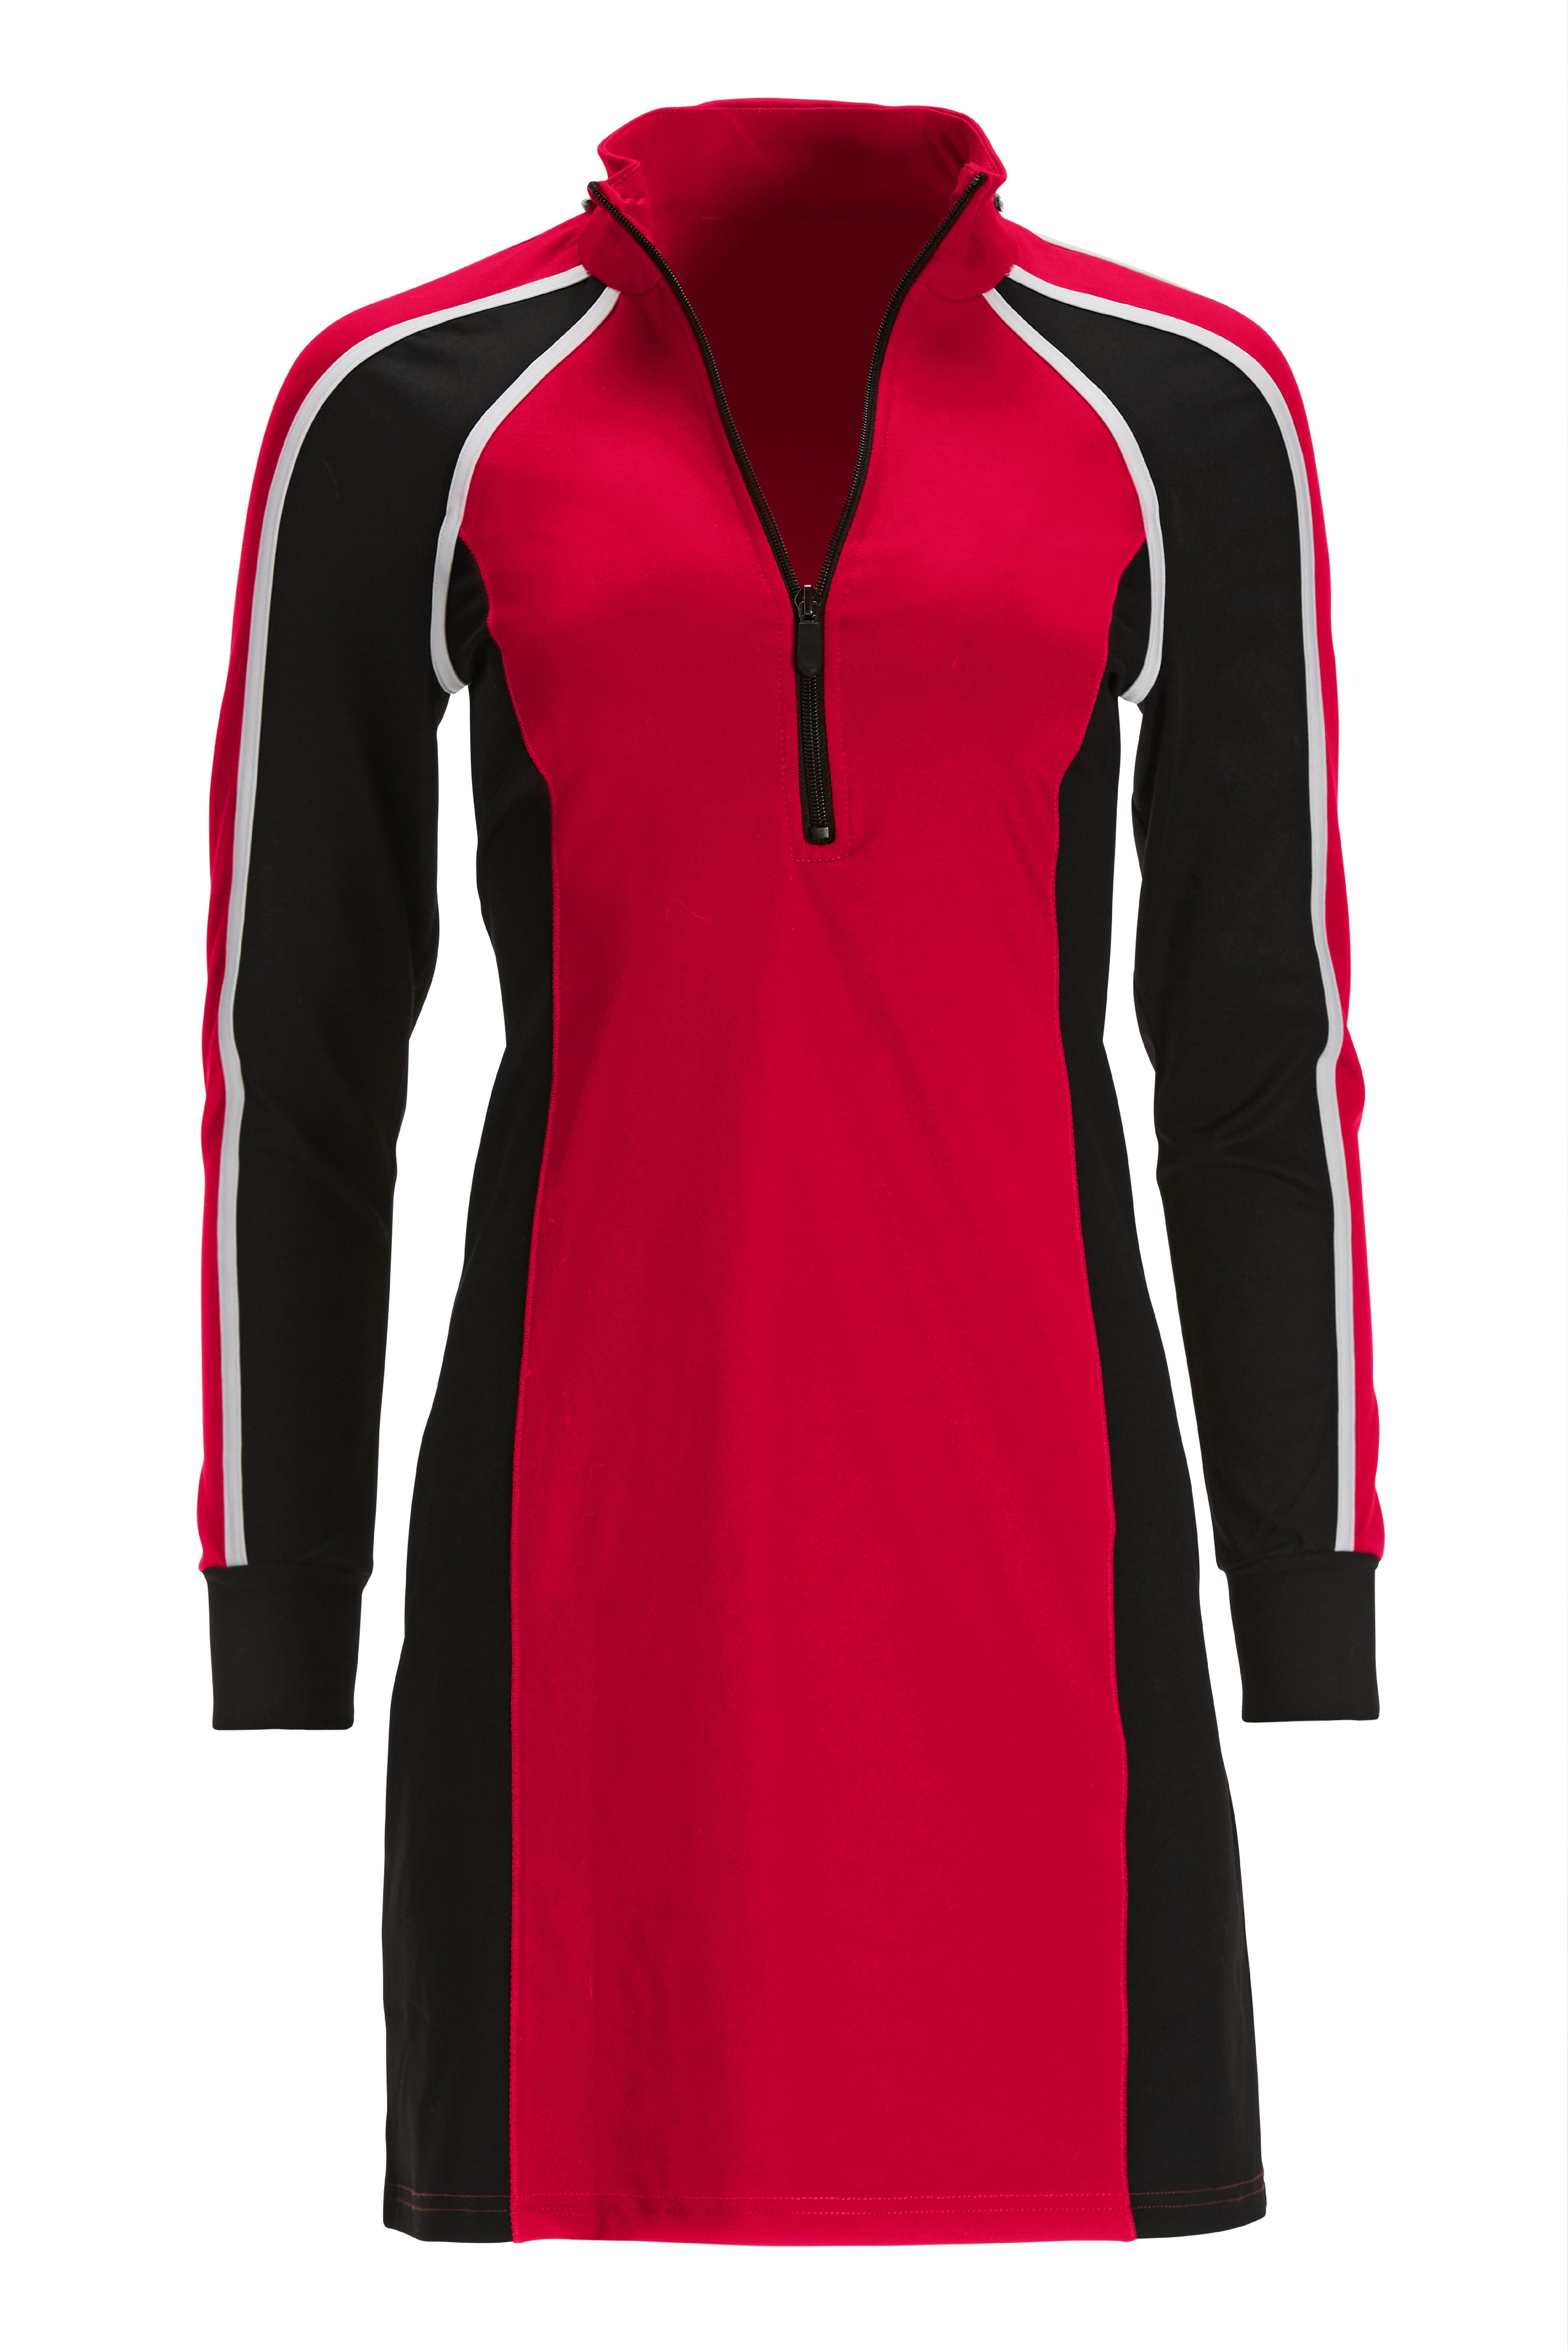 red, white, and black colorblock long-sleeve sport dress.